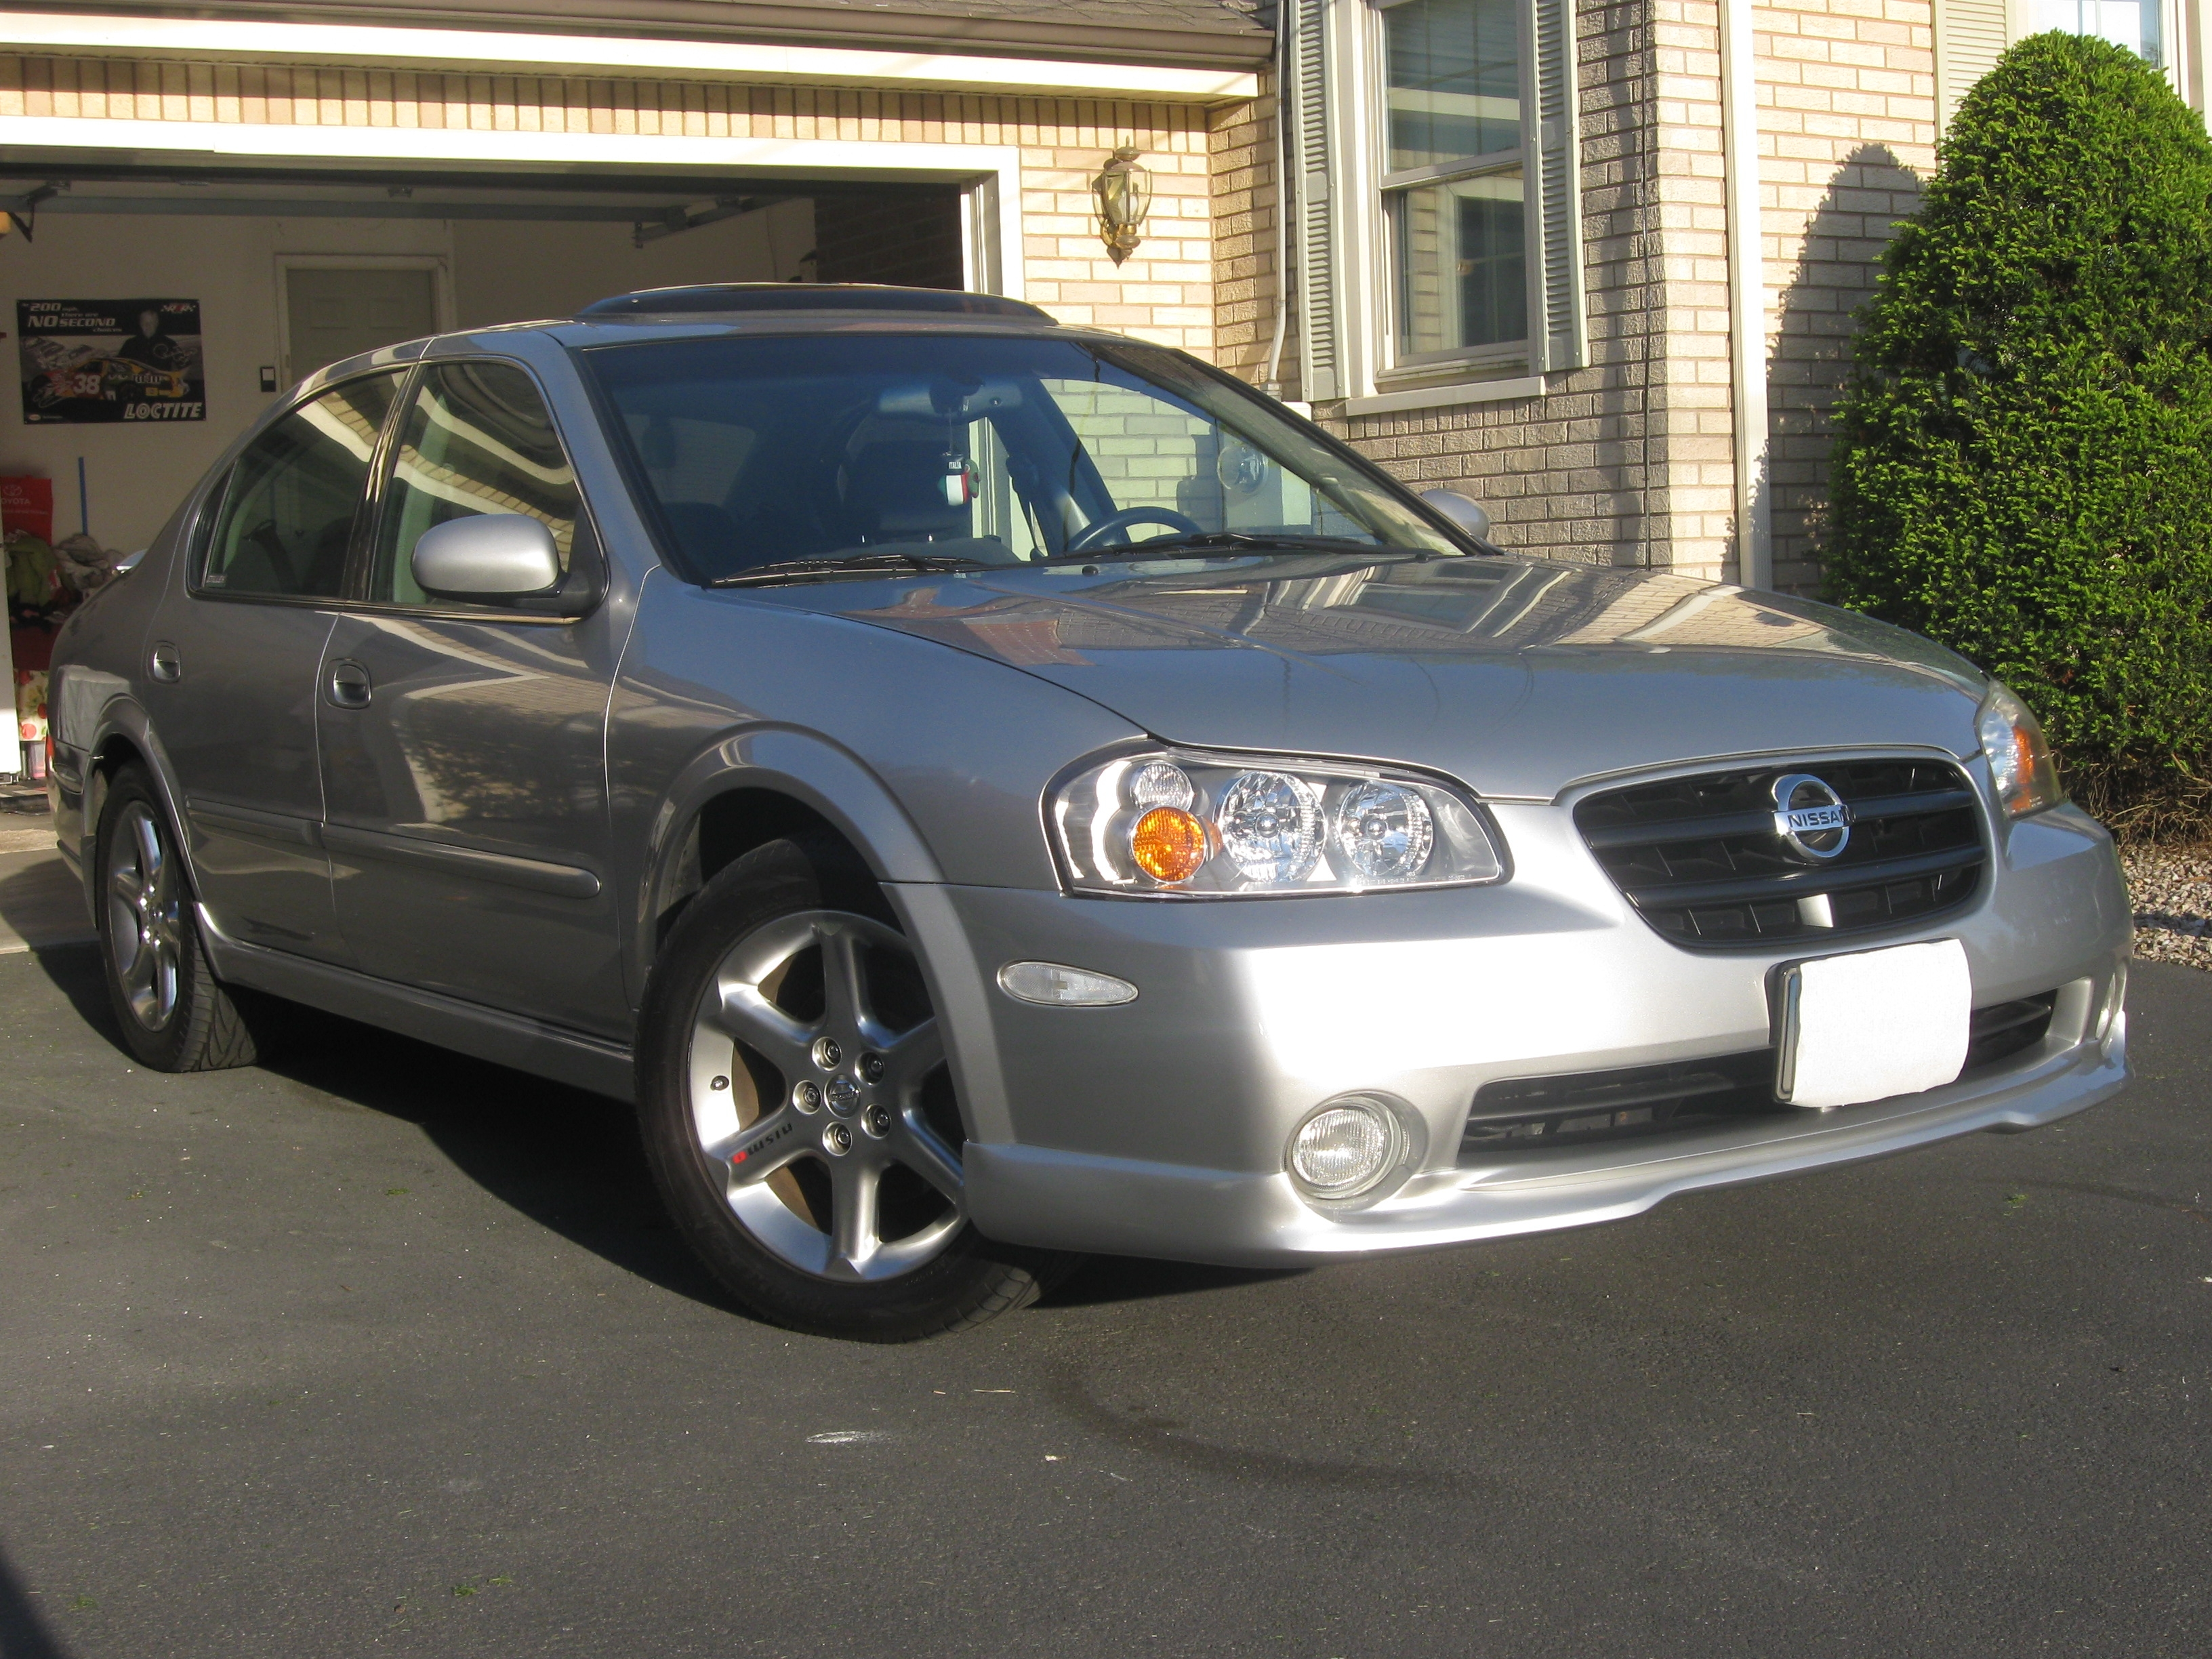 spags1 2003 nissan maxima specs, photos, modification info at